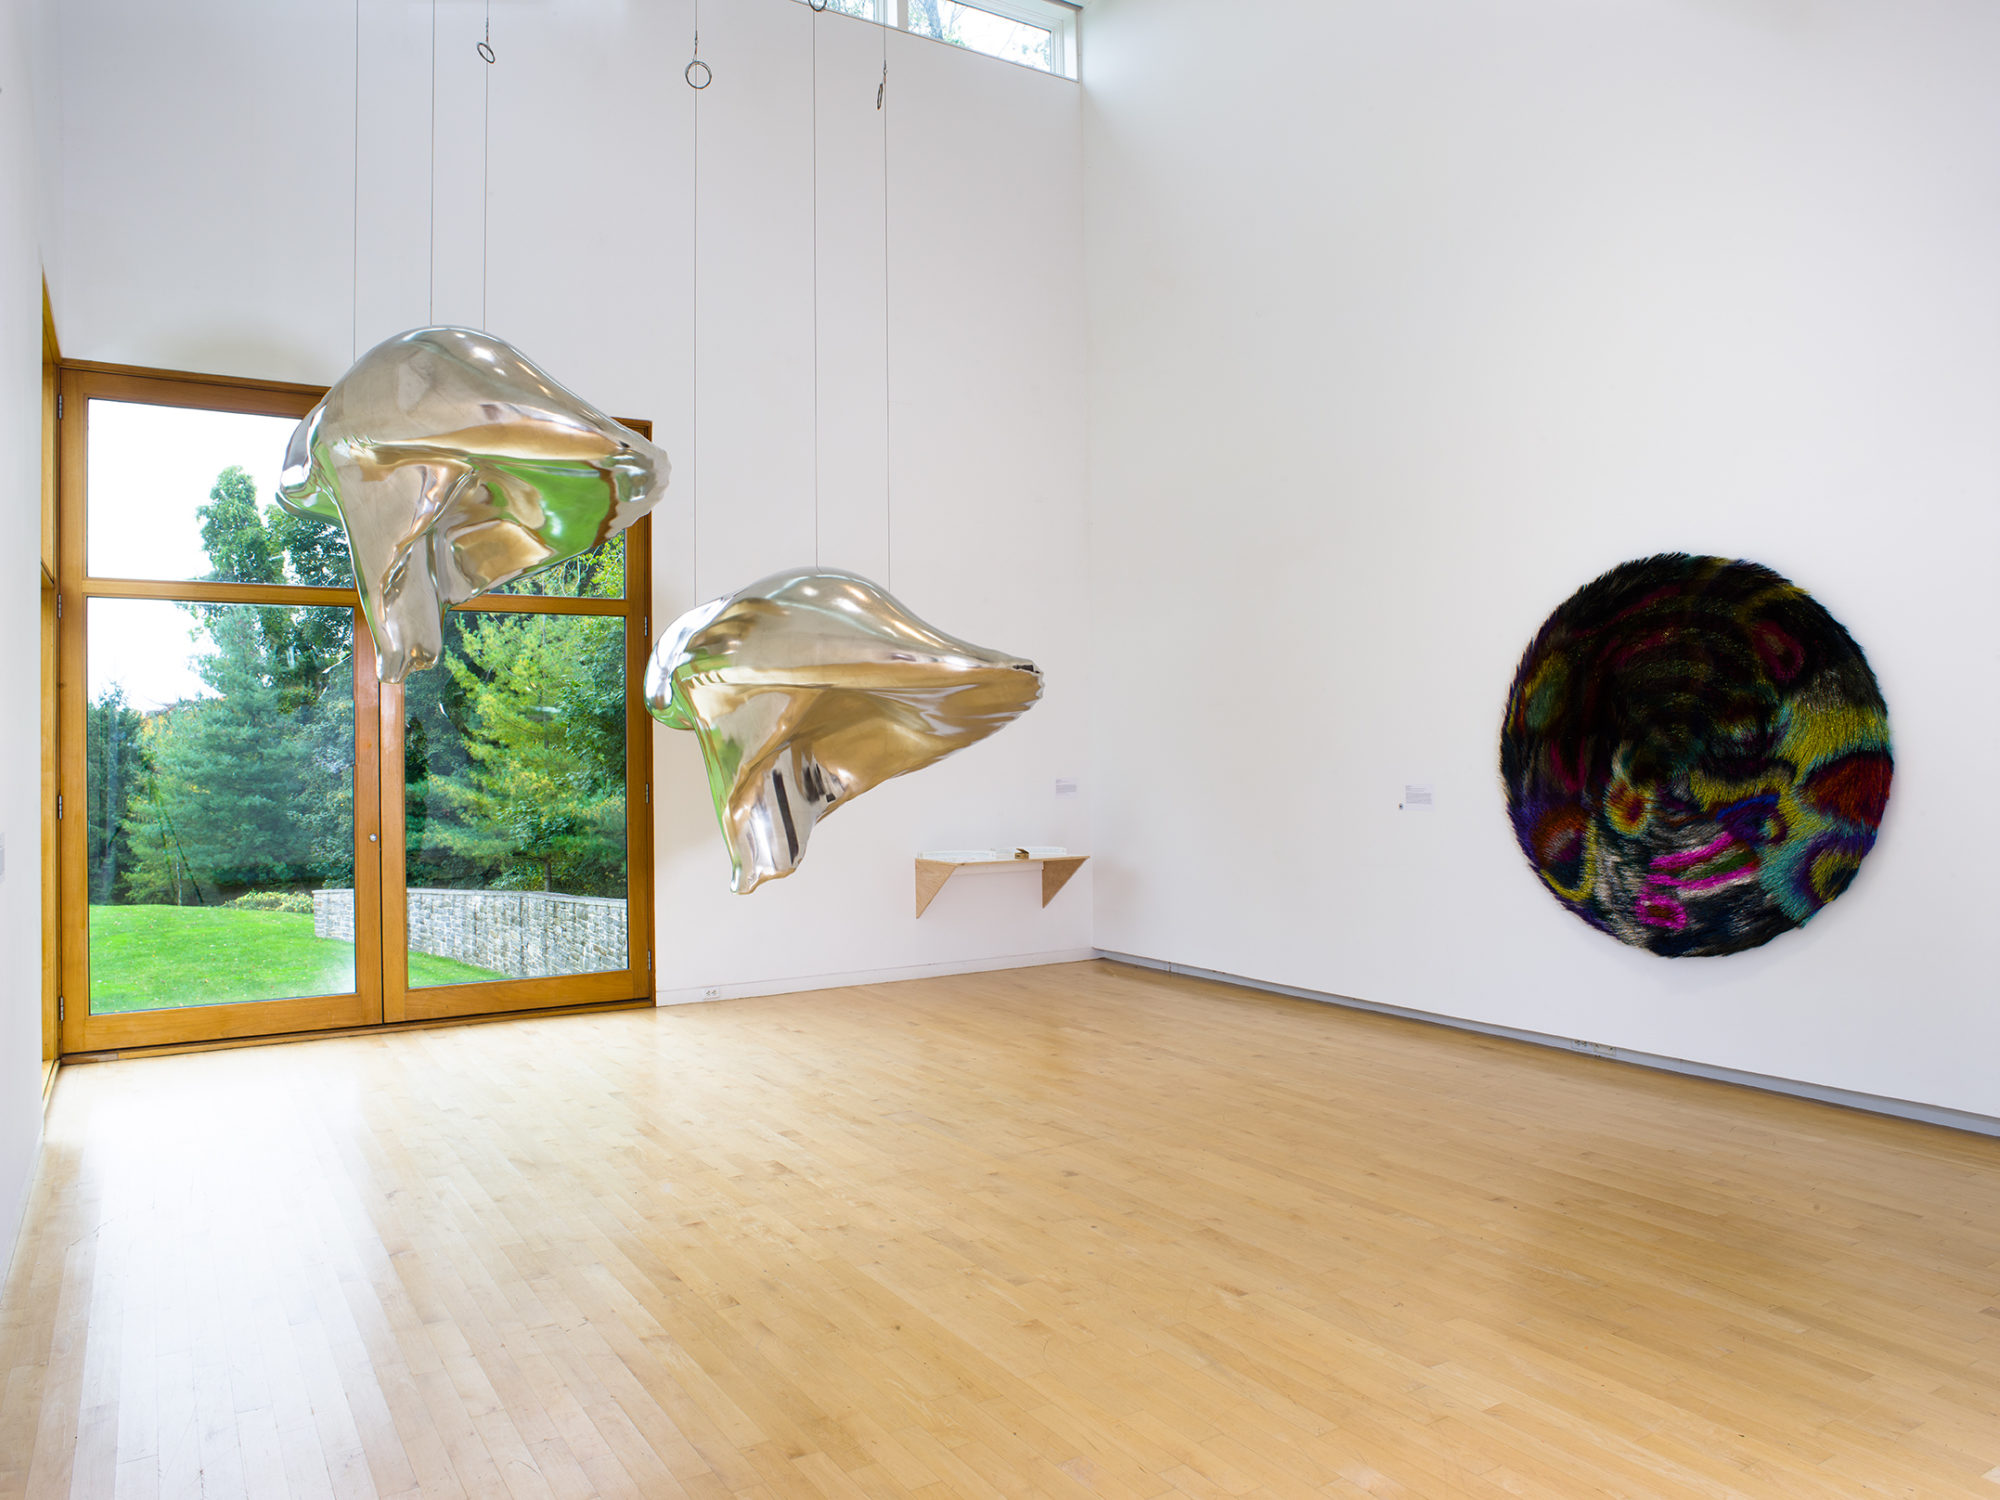 Two silver sculptures hang from the ceiling